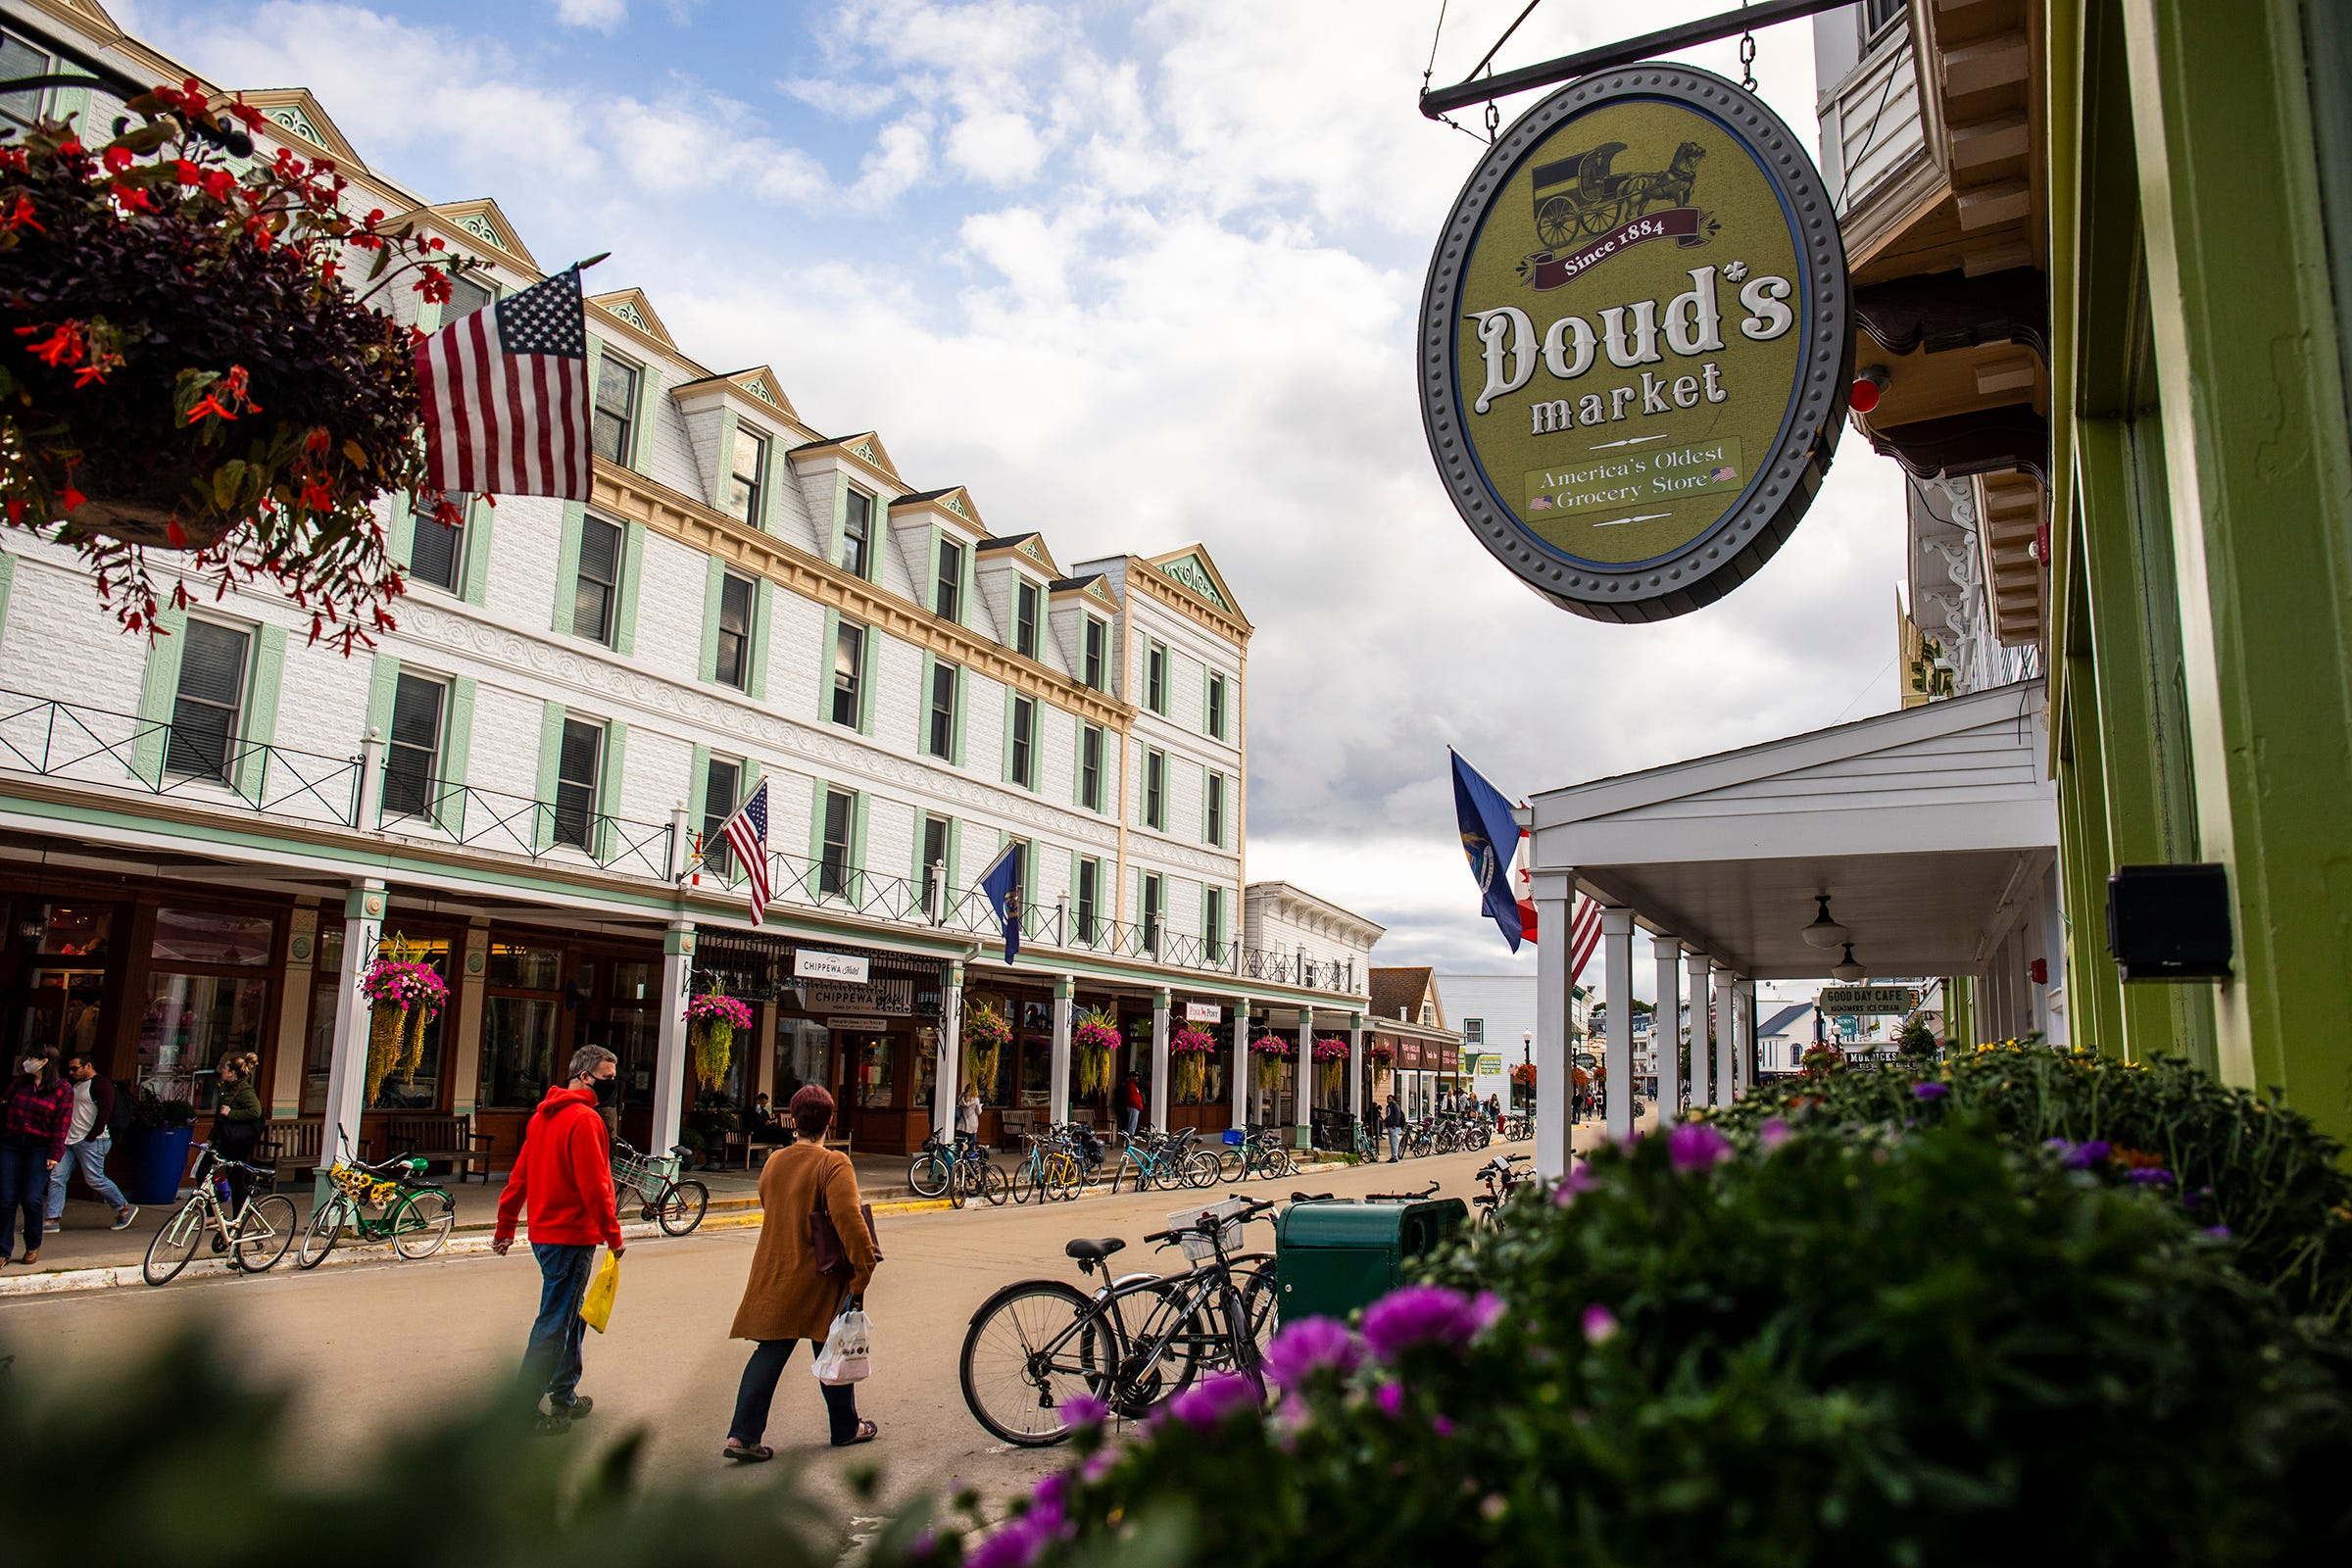 Mackinac Island: Tourists, businesses on Michigan's Upper Peninsula eager to resume normal life after COVID